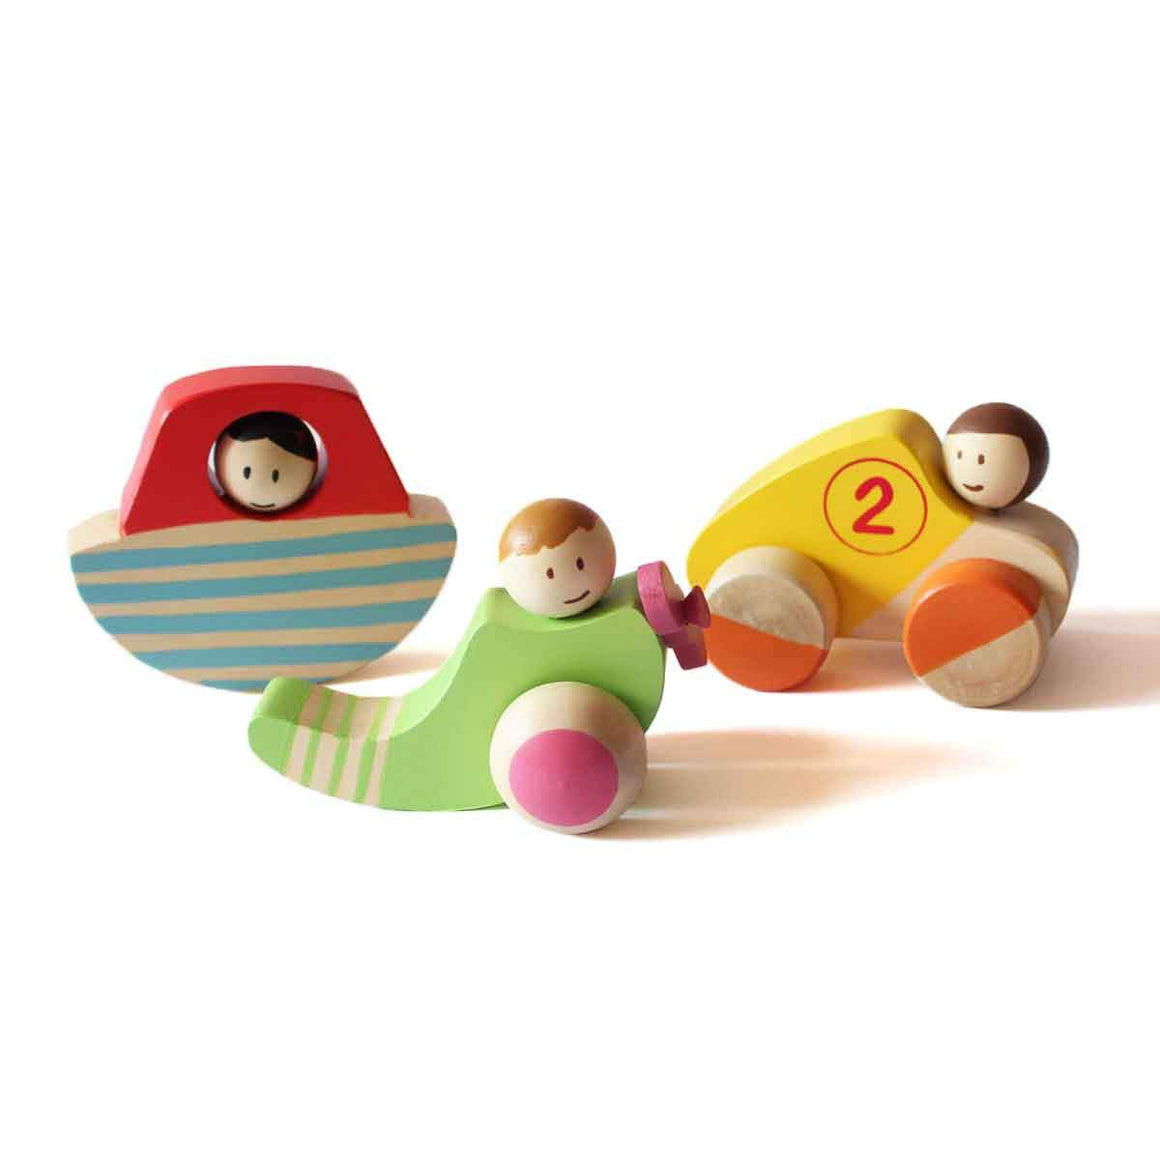 Wooden Vehicles- Set of 3